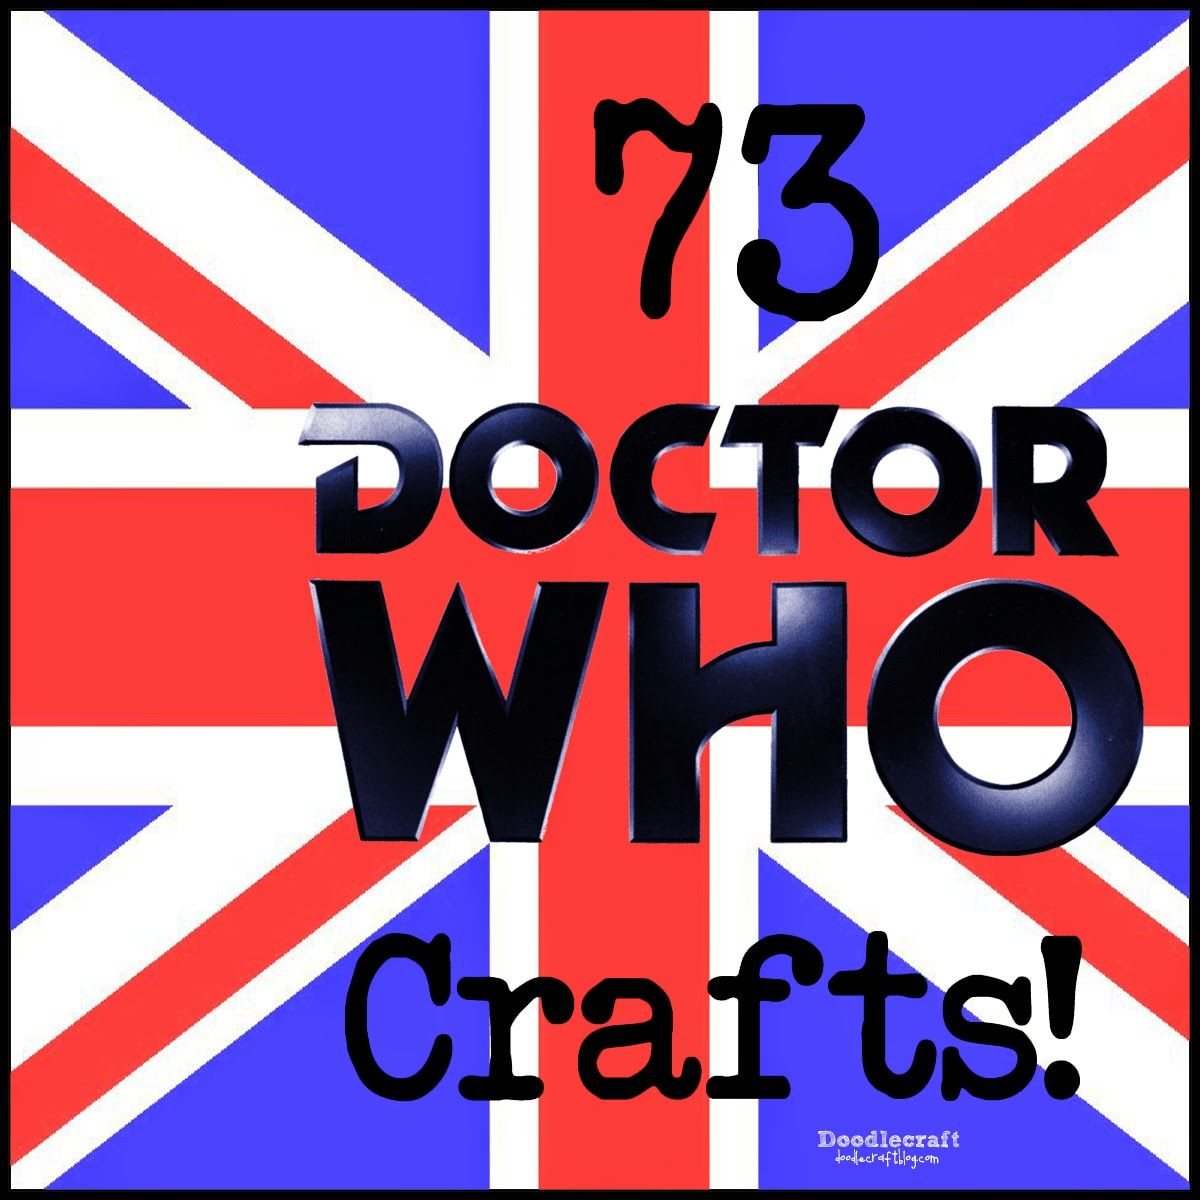 73 Doctor Who Crafts!!! in 2020 Doctor who crafts